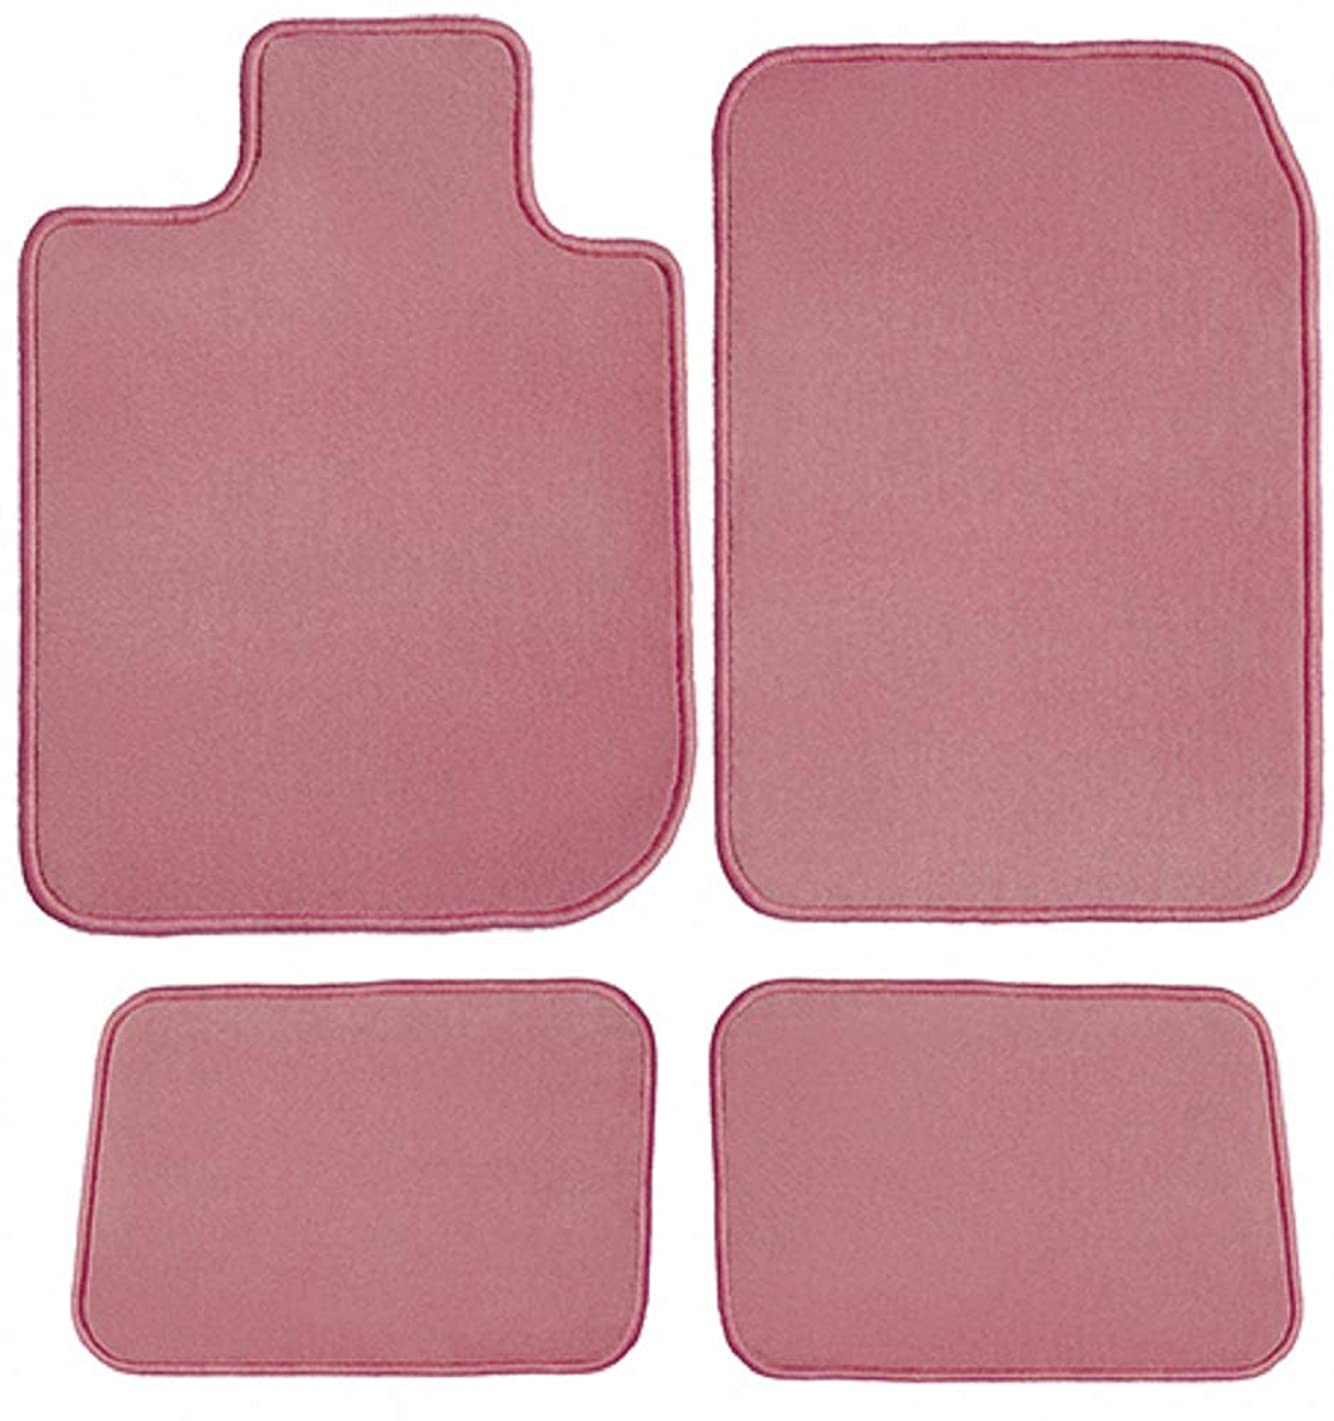 GGBAILEY Ford Expedition EL 2007, 2008, 2009, 2010, 2011, 2012, 2013, 2014, 2015, 2016, 2017 Pink Driver, Passenger & Rear Floor Mats